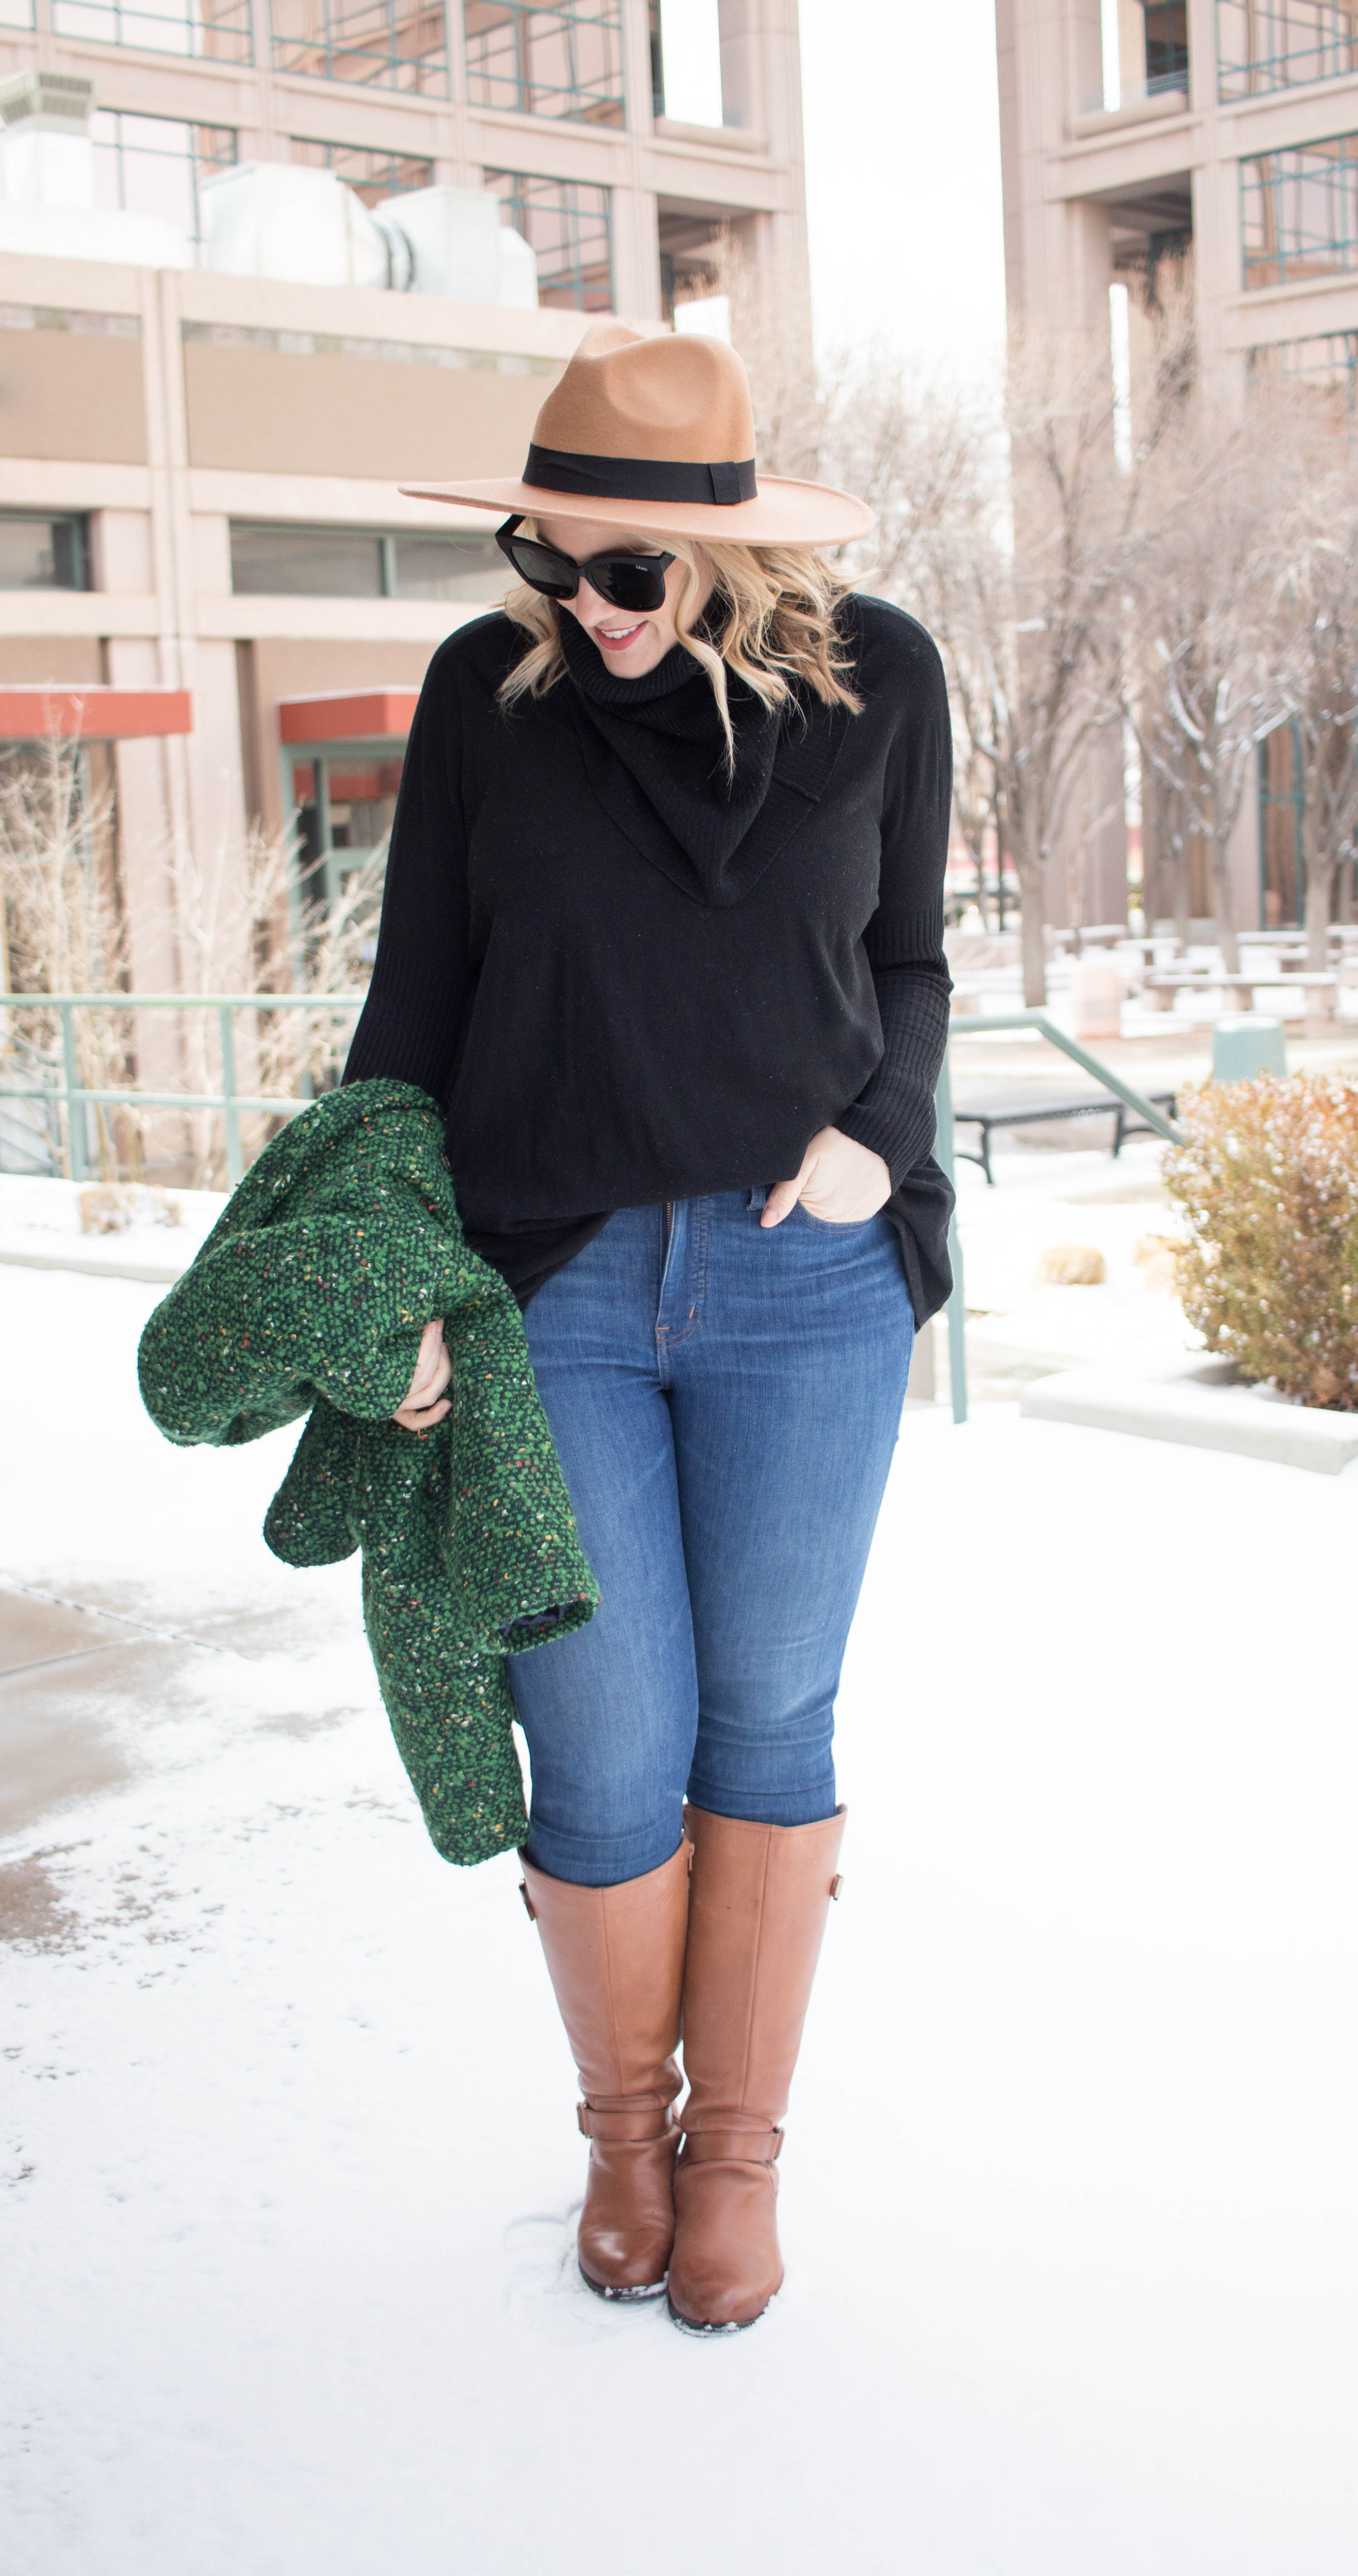 winter layers cute winter style #winterlayers #neutraloutfit #widebrimhat